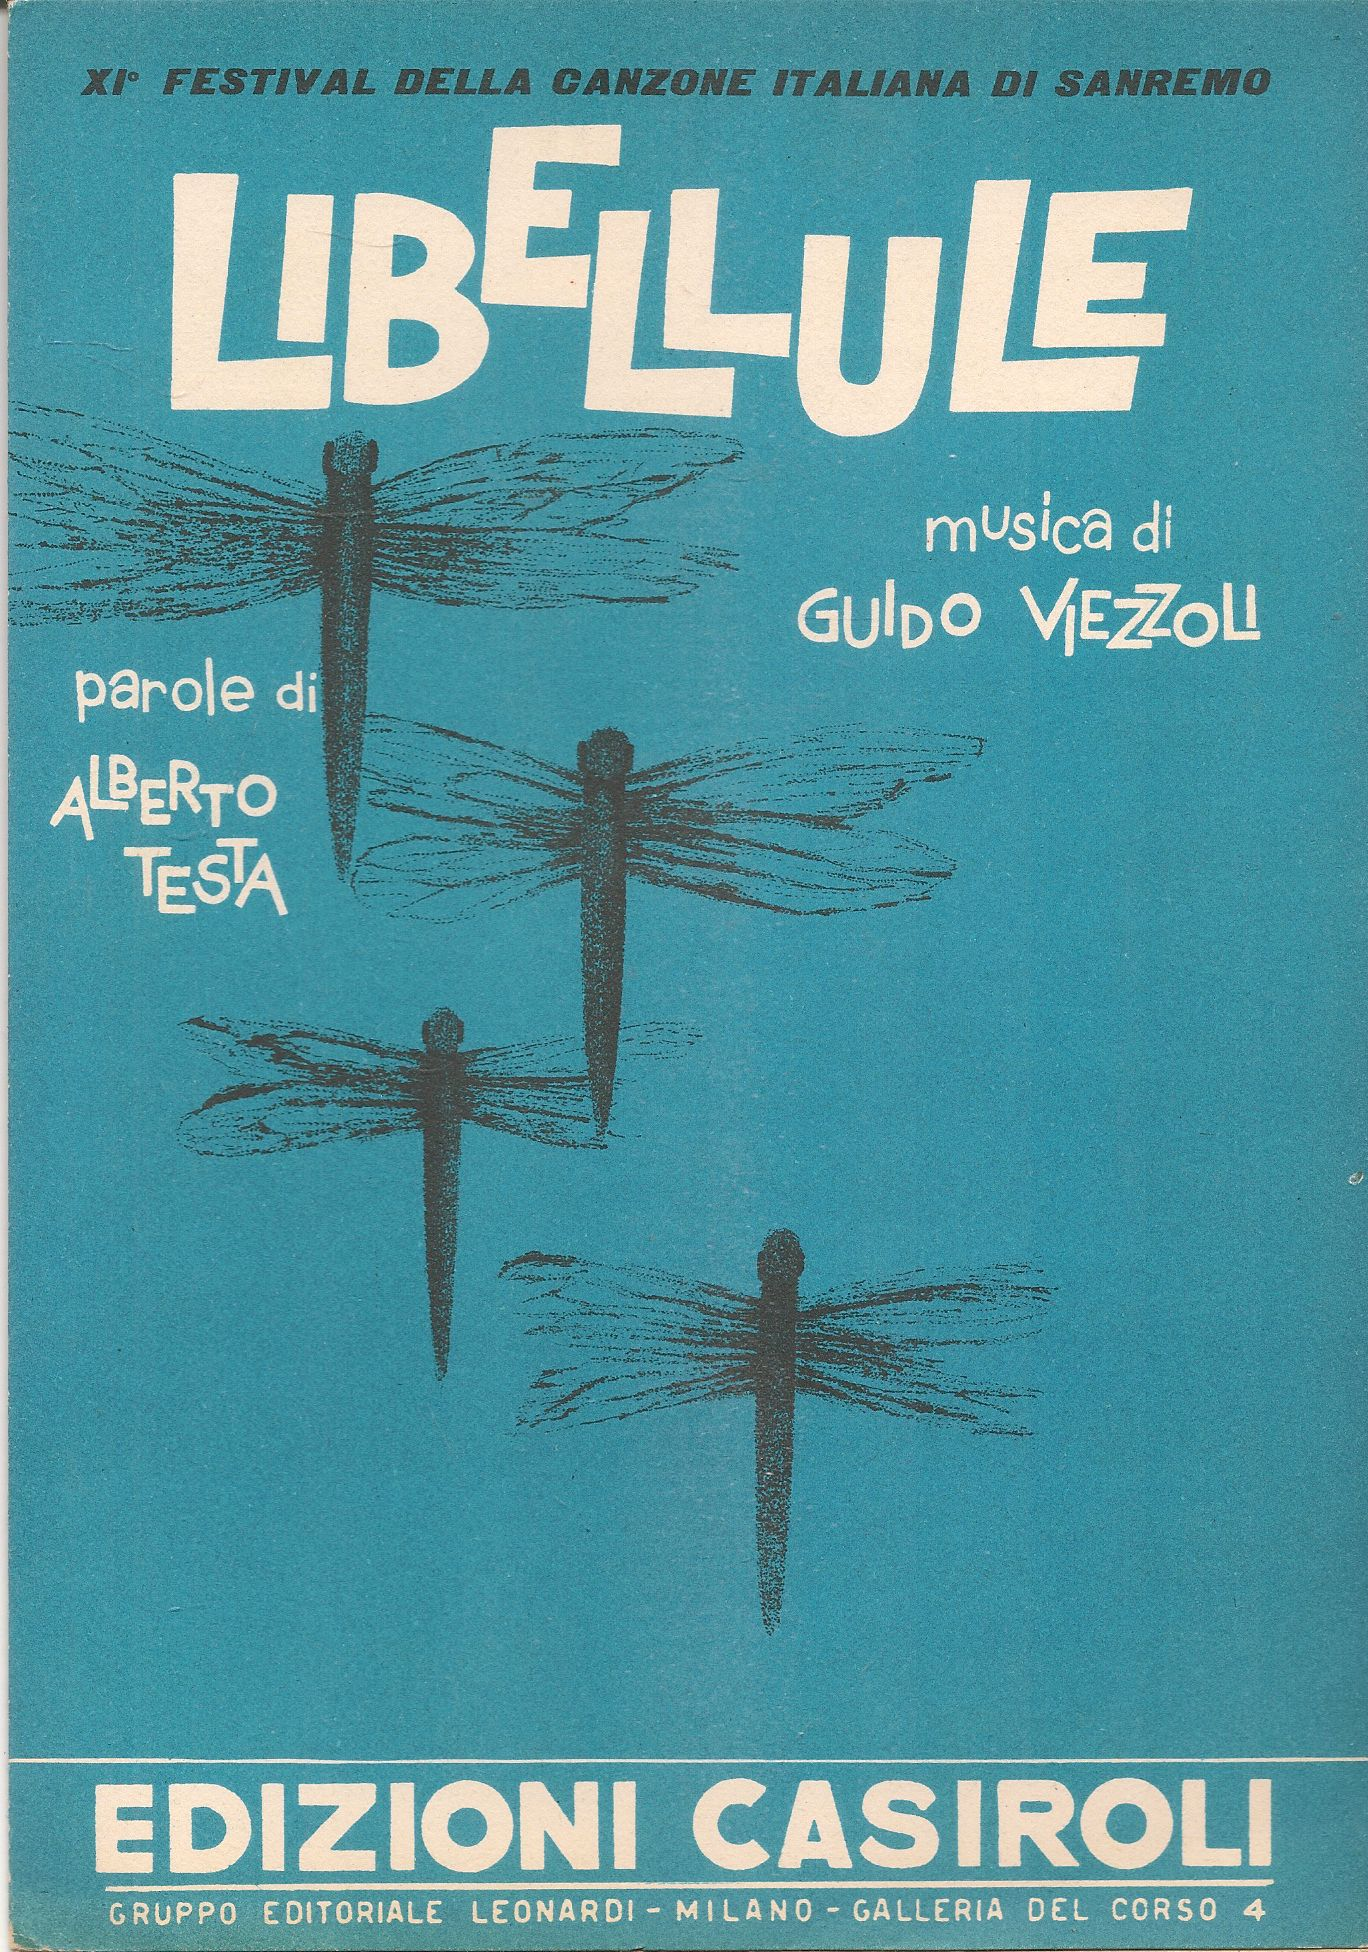 LIBELLULE - SANREMO 1961 - SPARTITO-SHEET MUSIC